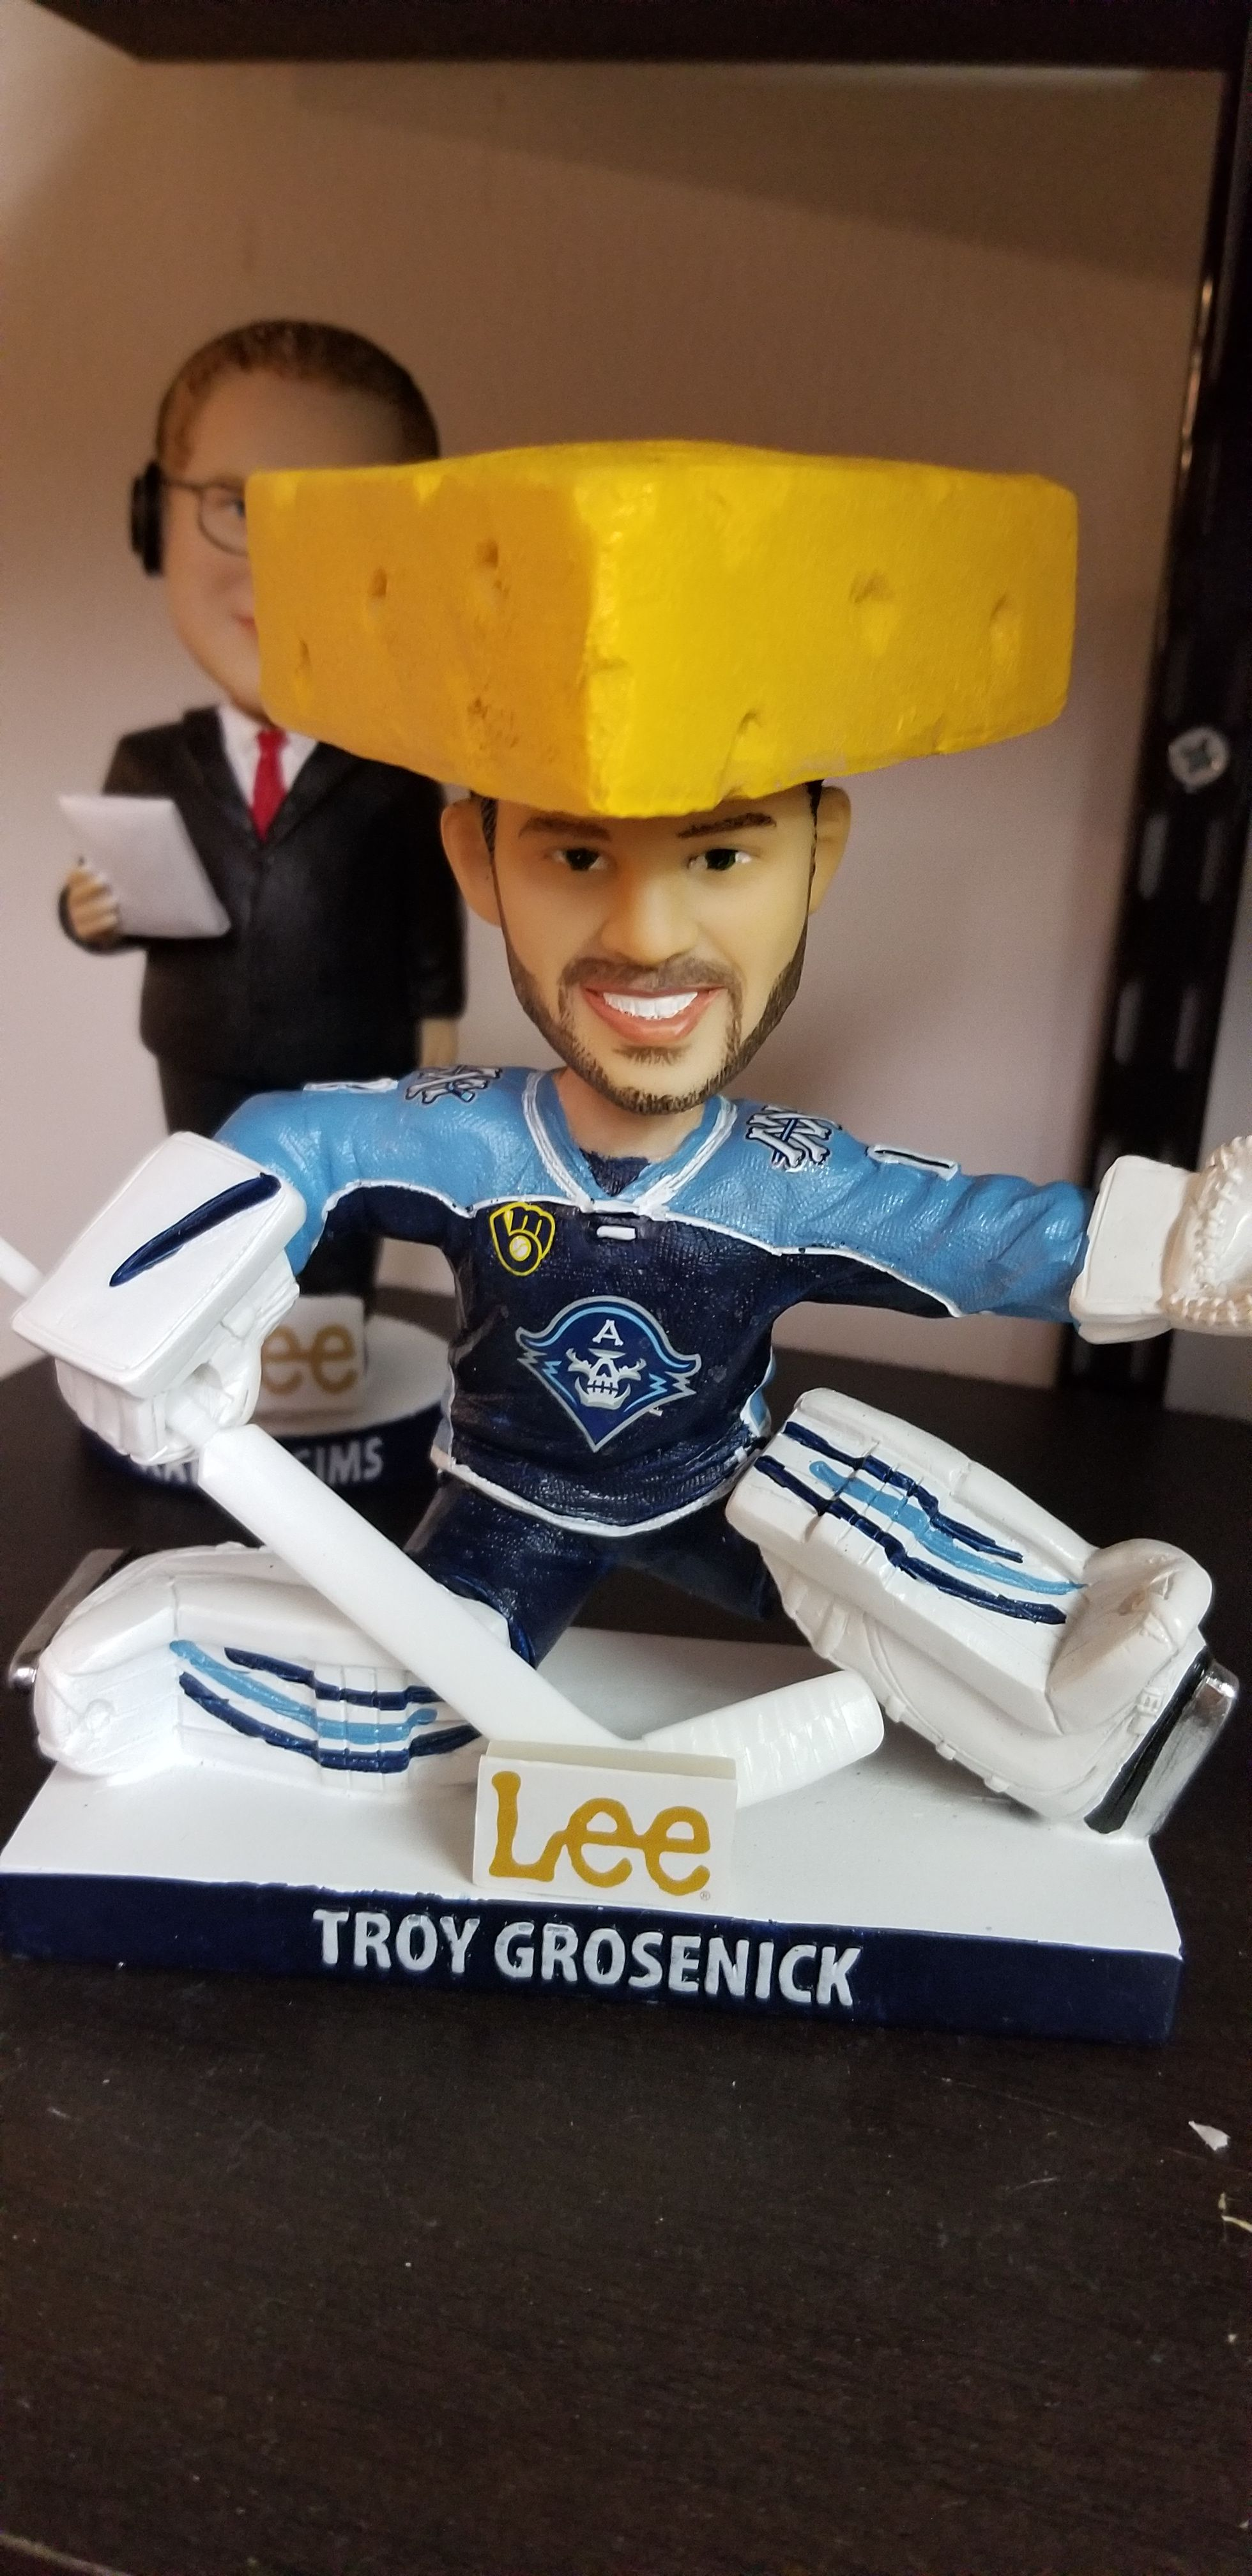 Troy Grosenick Bobblehead - Admirals front image (front cover)